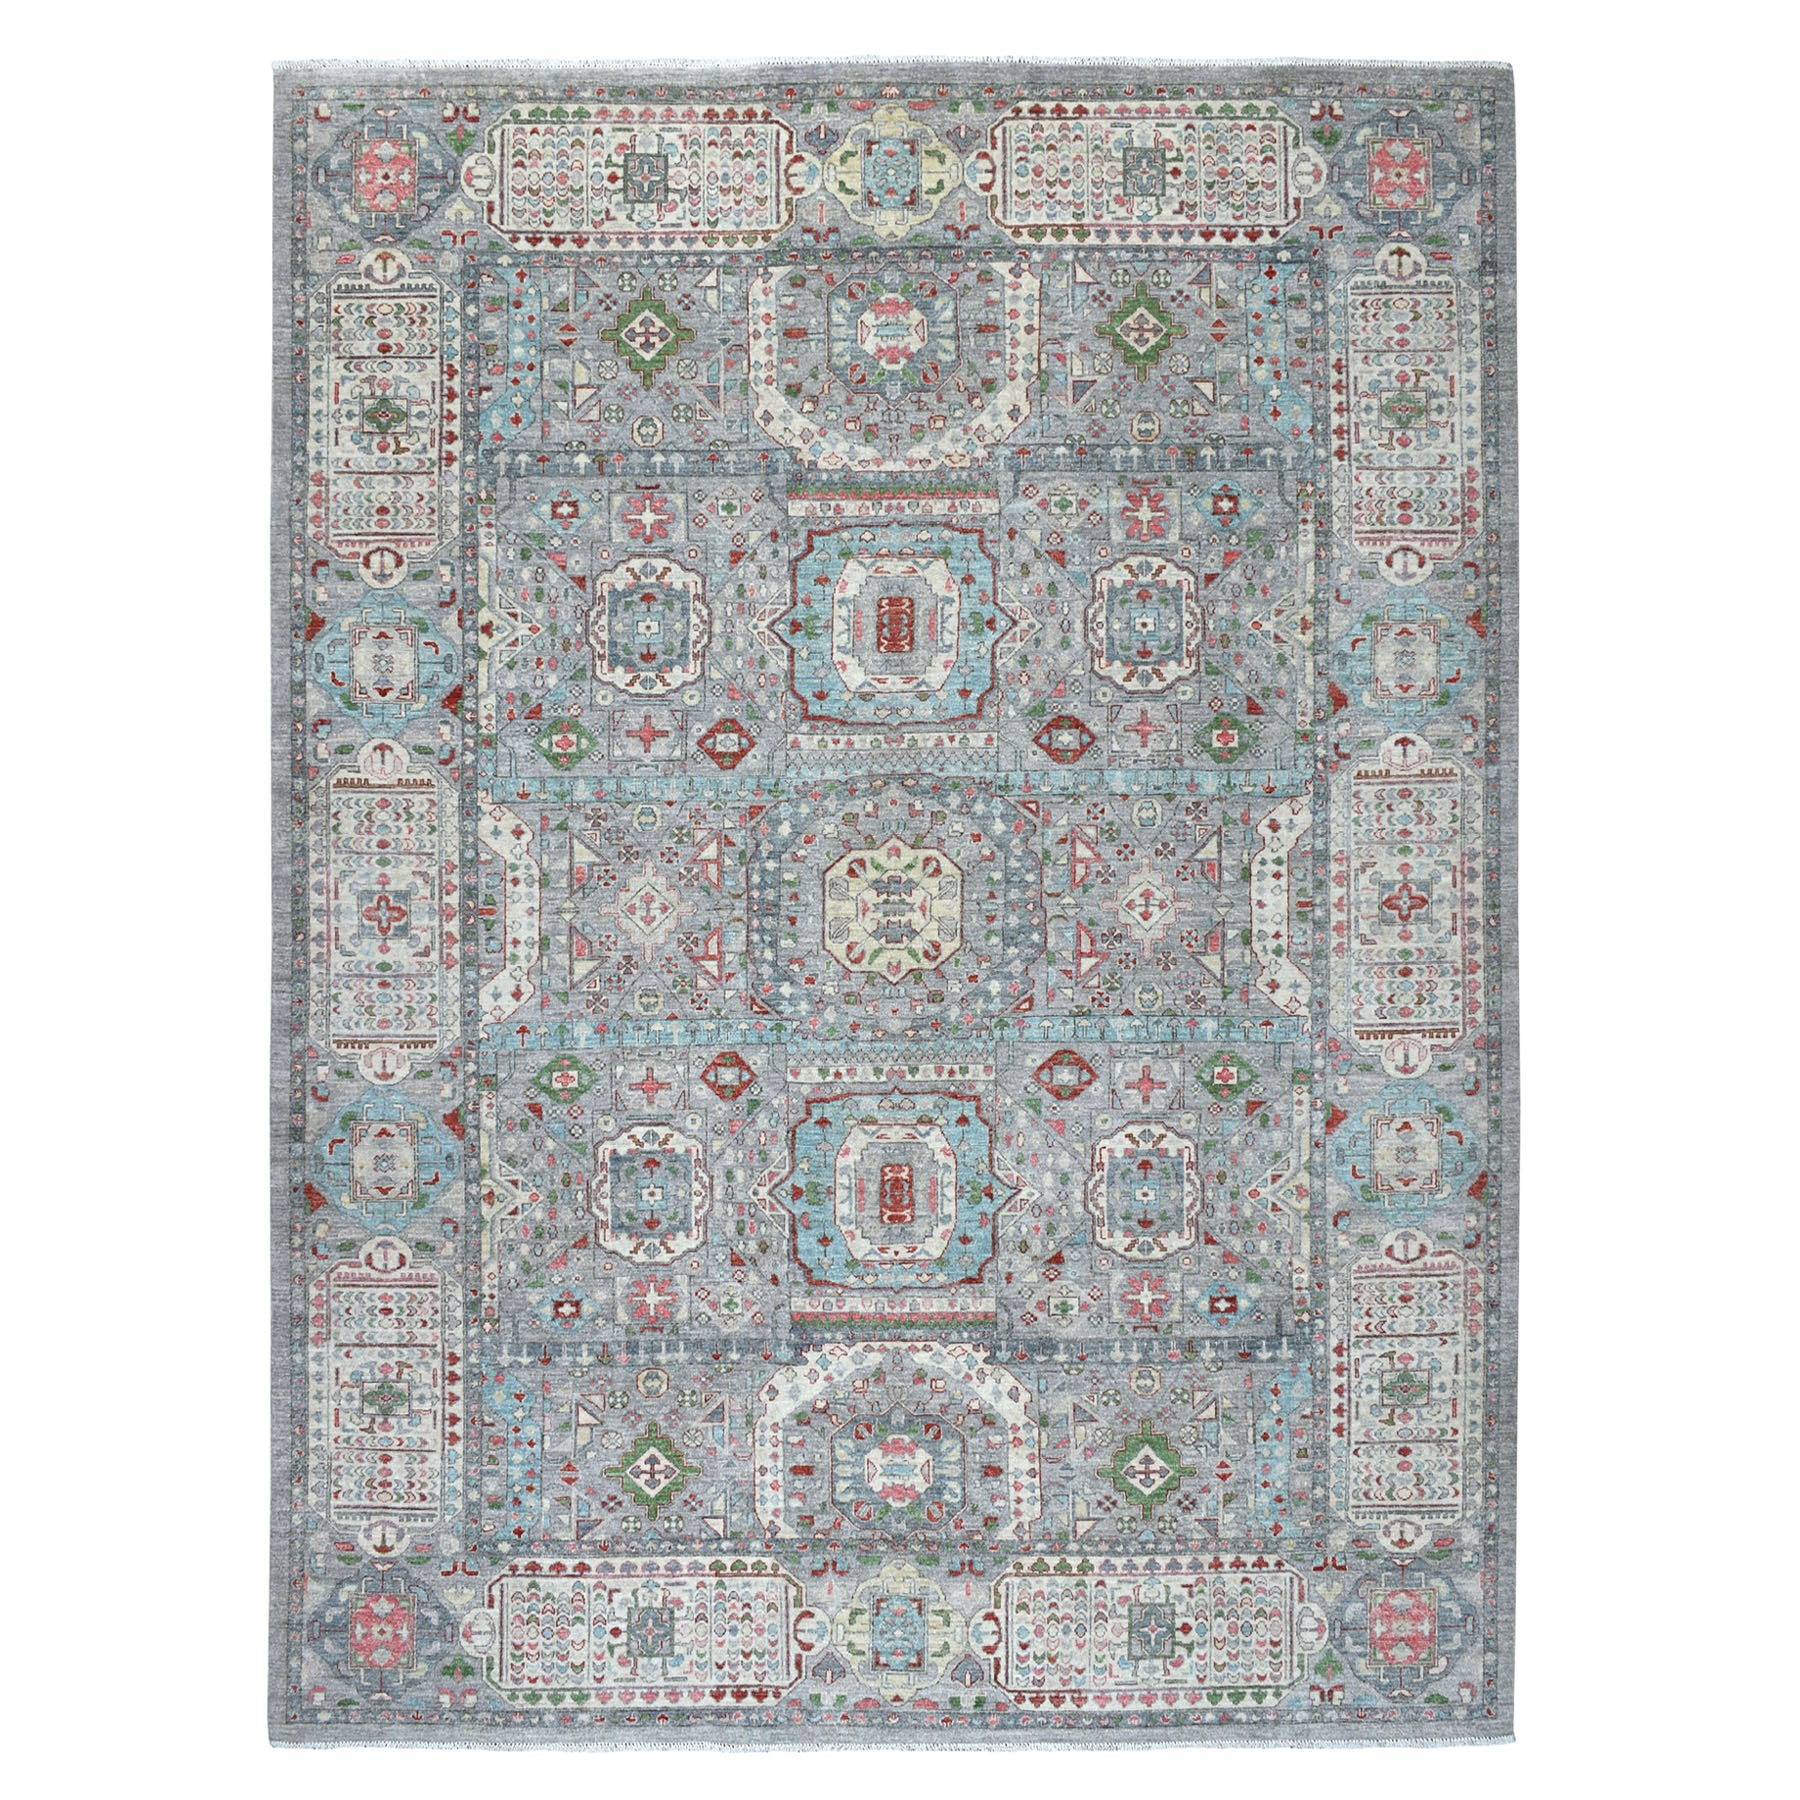 "8'10""x12' Peshawar With Mamluk Design With Pop Of Color Hand Knotted Oriental Rug"